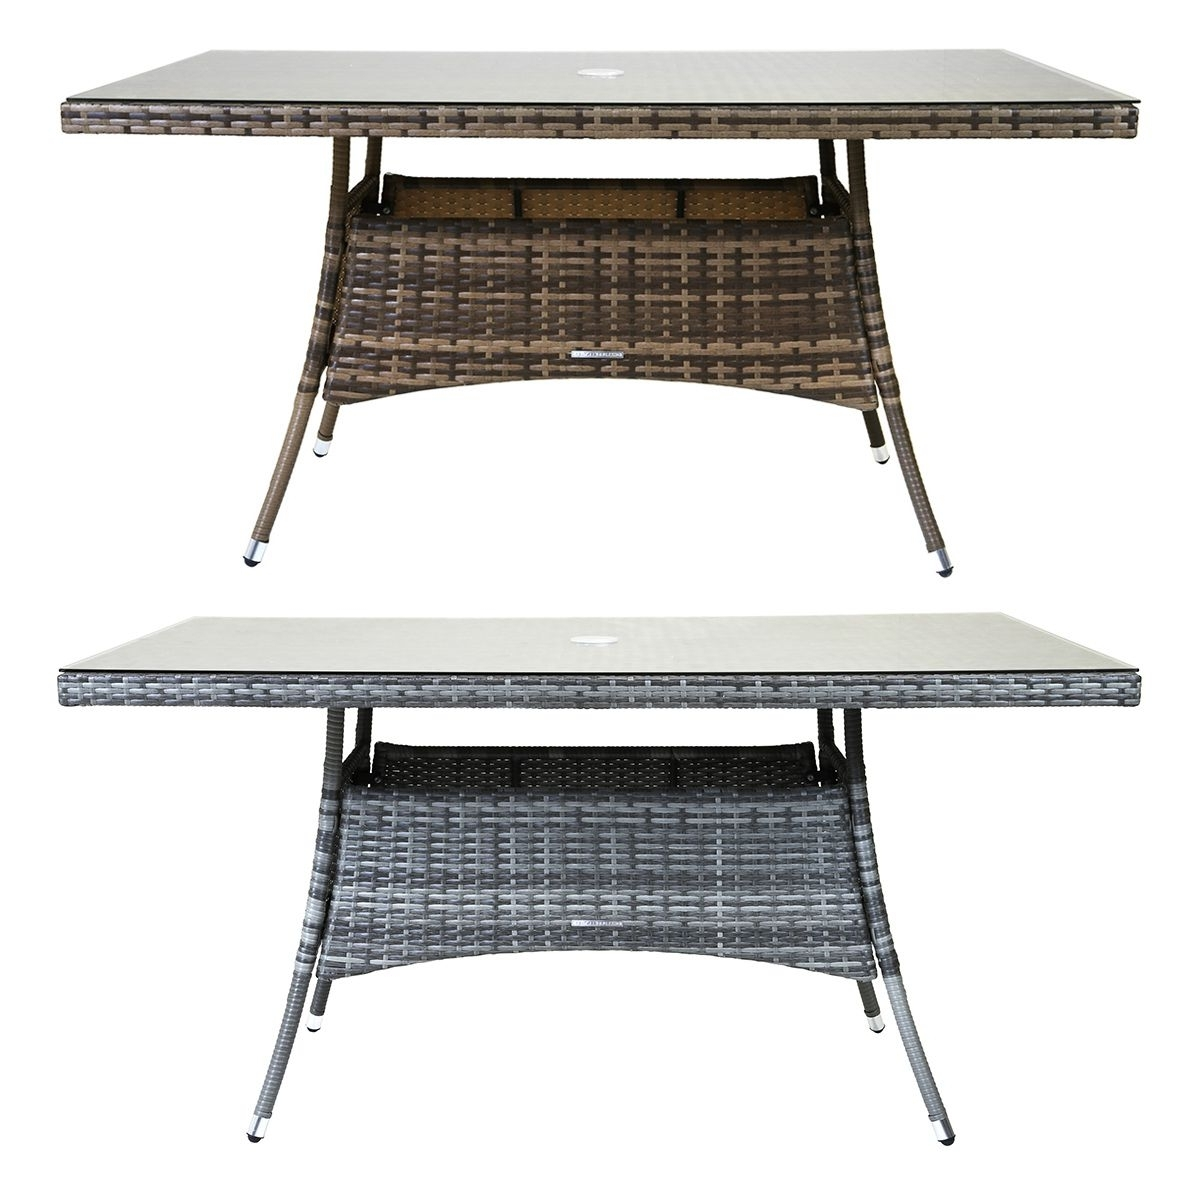 Rattan Dining Tables In Most Up To Date Charles Bentley Rectangular Rattan Dining Table Patio Garden (View 12 of 25)